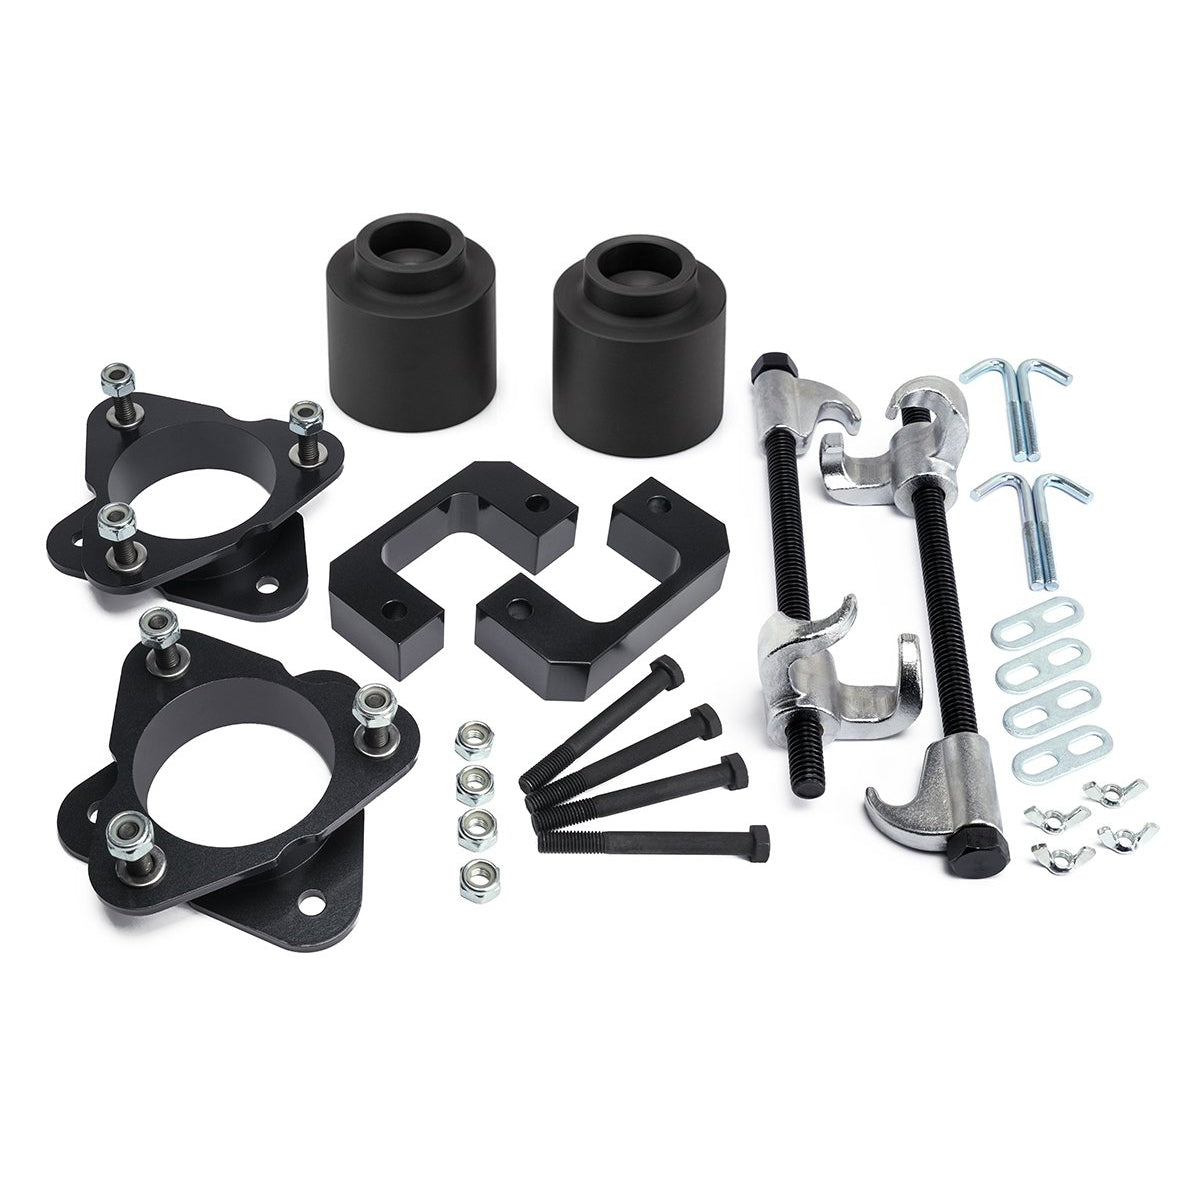 2007-2013 Chevy Avalanche 1500 Front Lift Kit with Shock Extenders with Compressor Tool